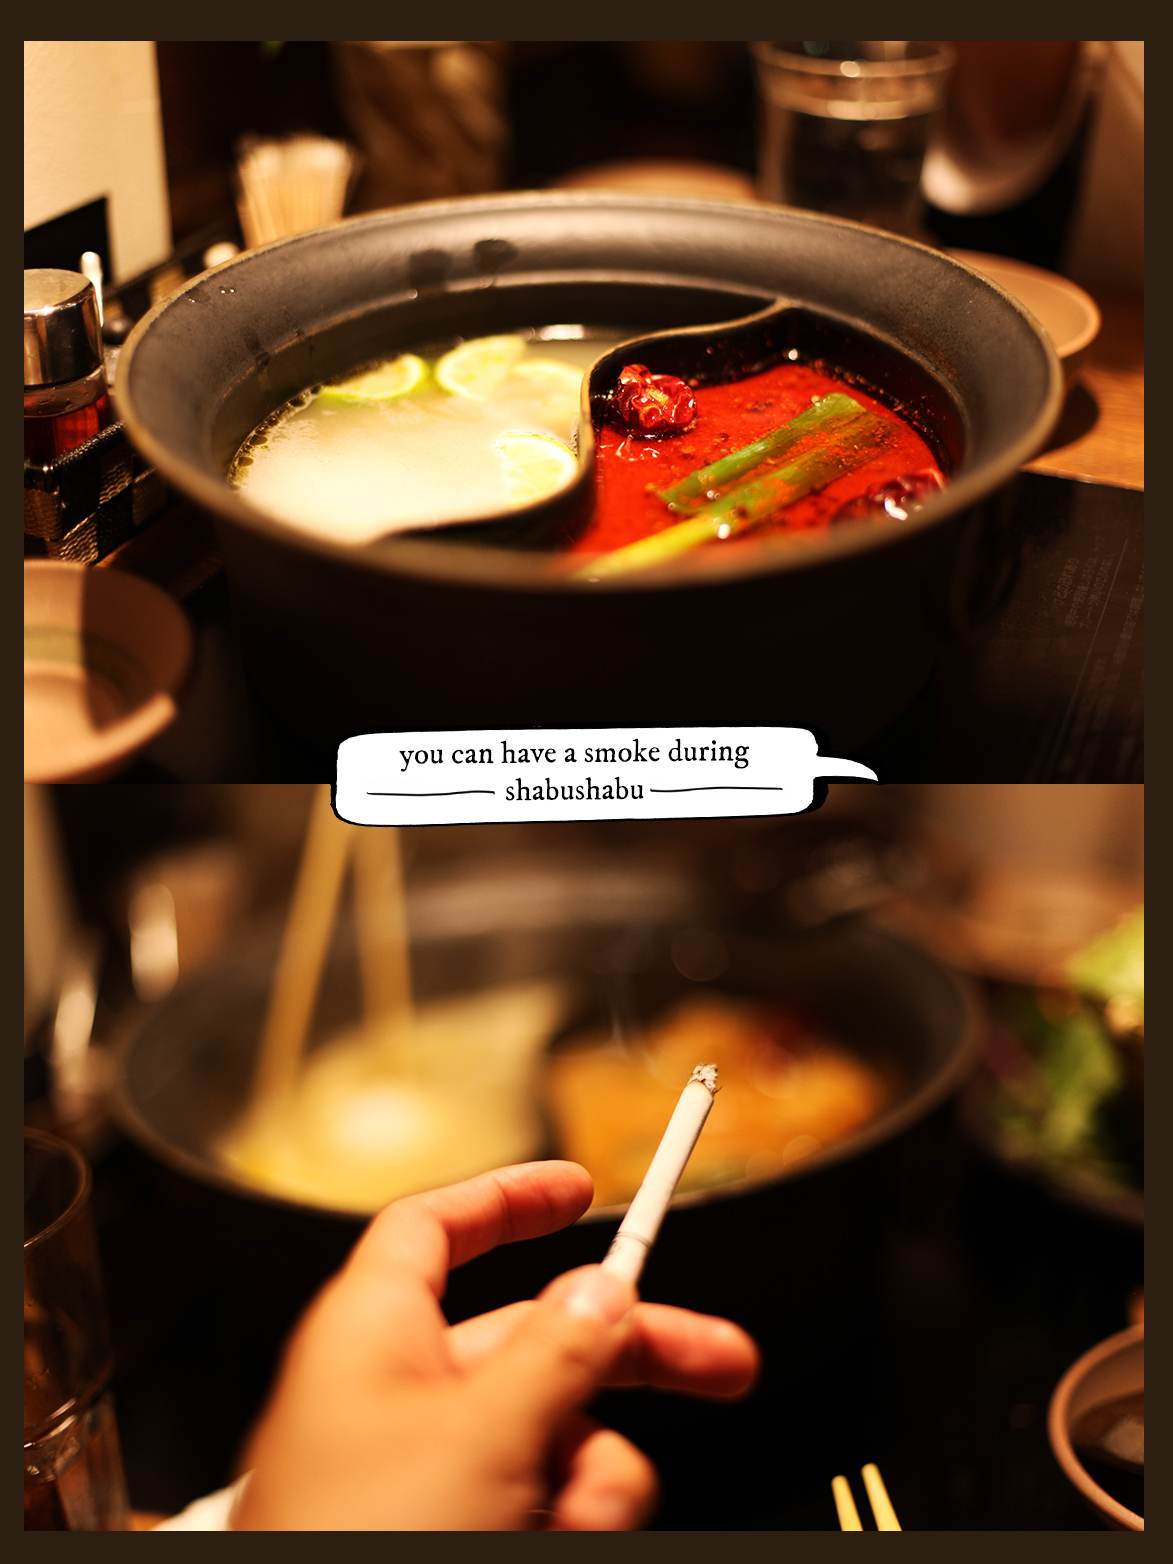 smoke during shabushabu